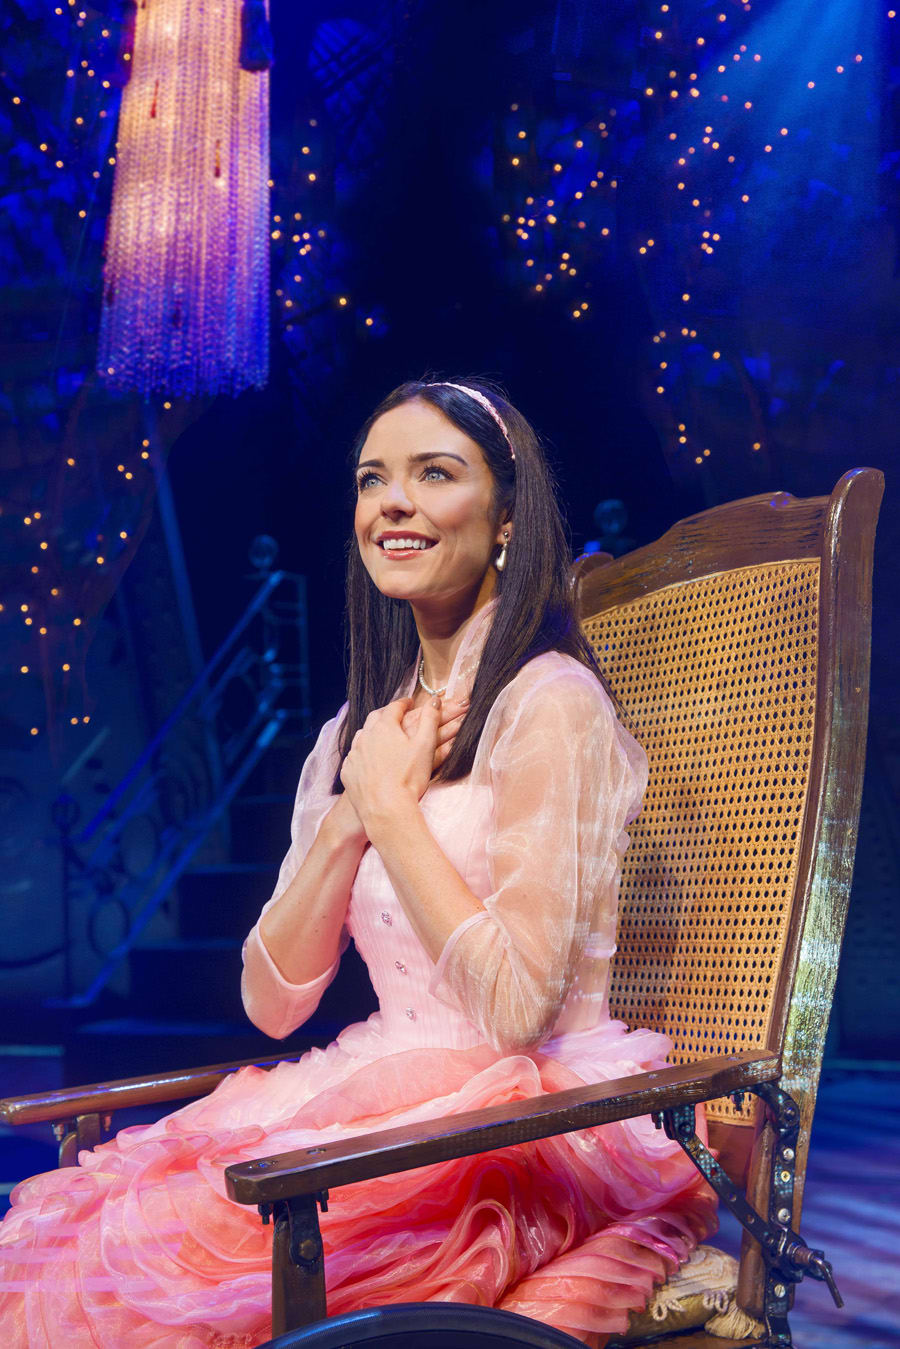 Sarah McNicholas (Nessarose) in Wicked at The Apollo Victoria Theatre (Photo: Matt Crockett)